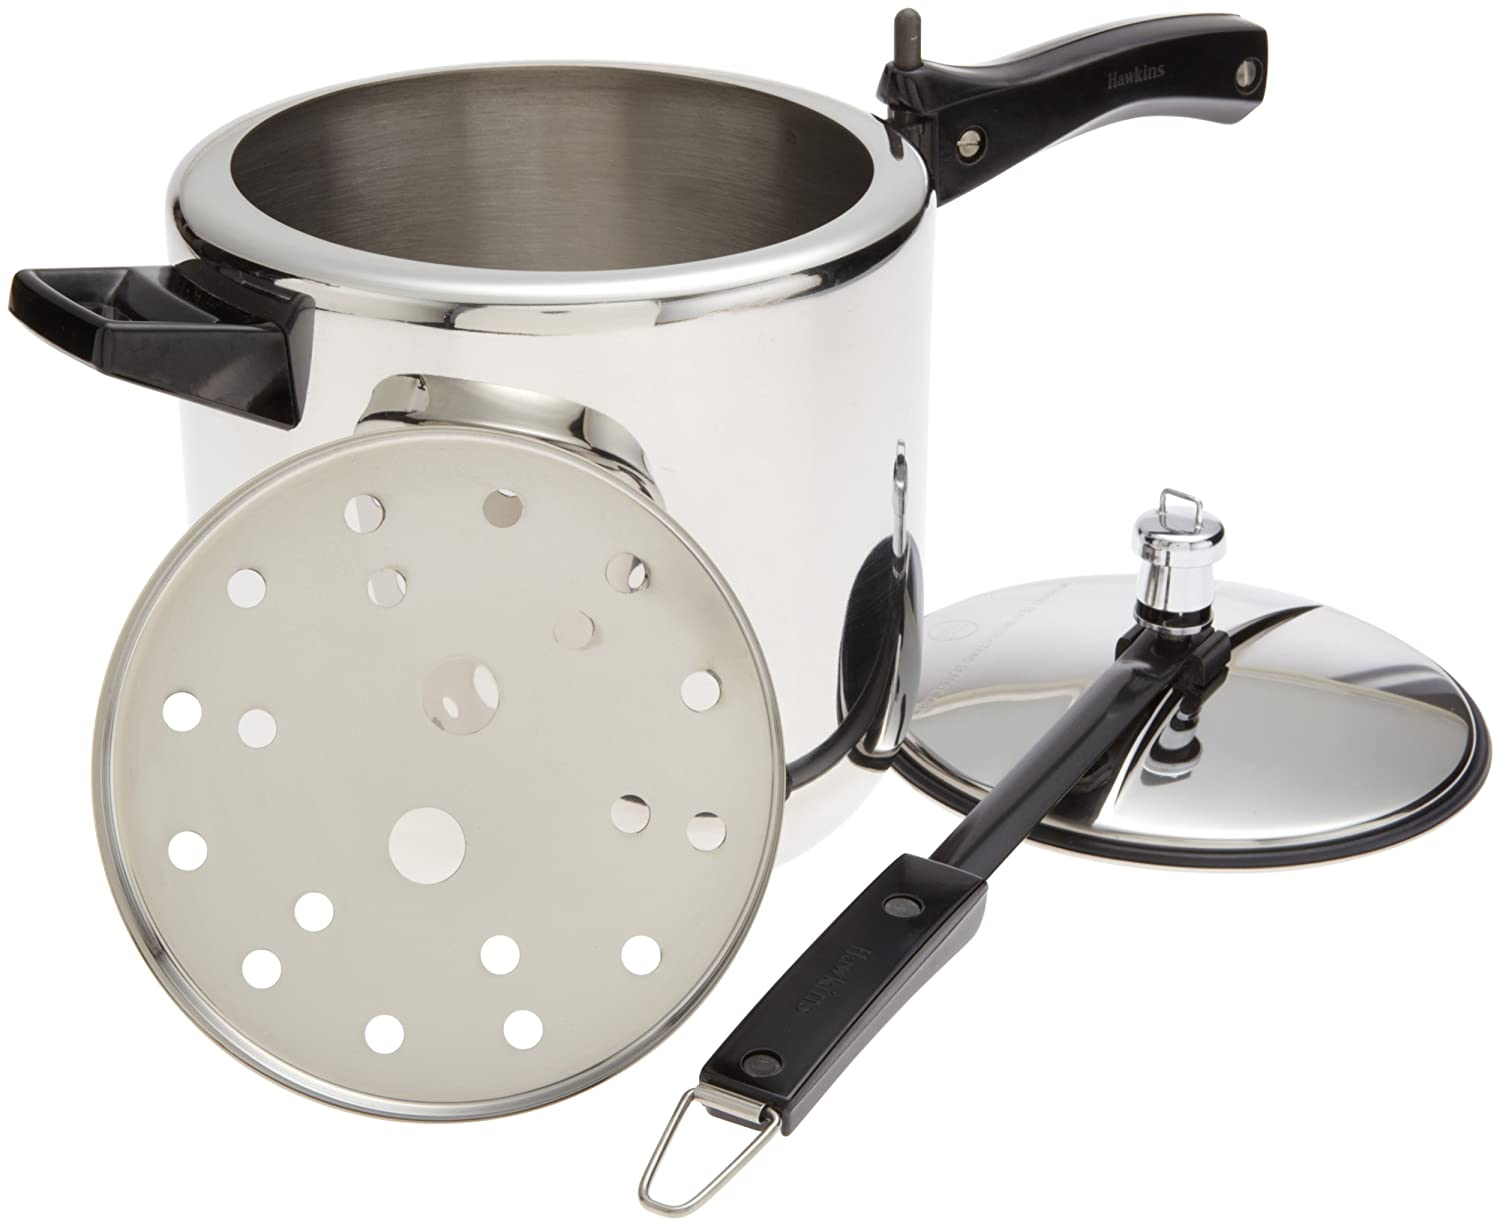 Buy Hawkins Stainless Steel Pressure Cooker 6 Litres Silver Online Induction Circuit Boardelectric Cookerinduction At Low Prices In India